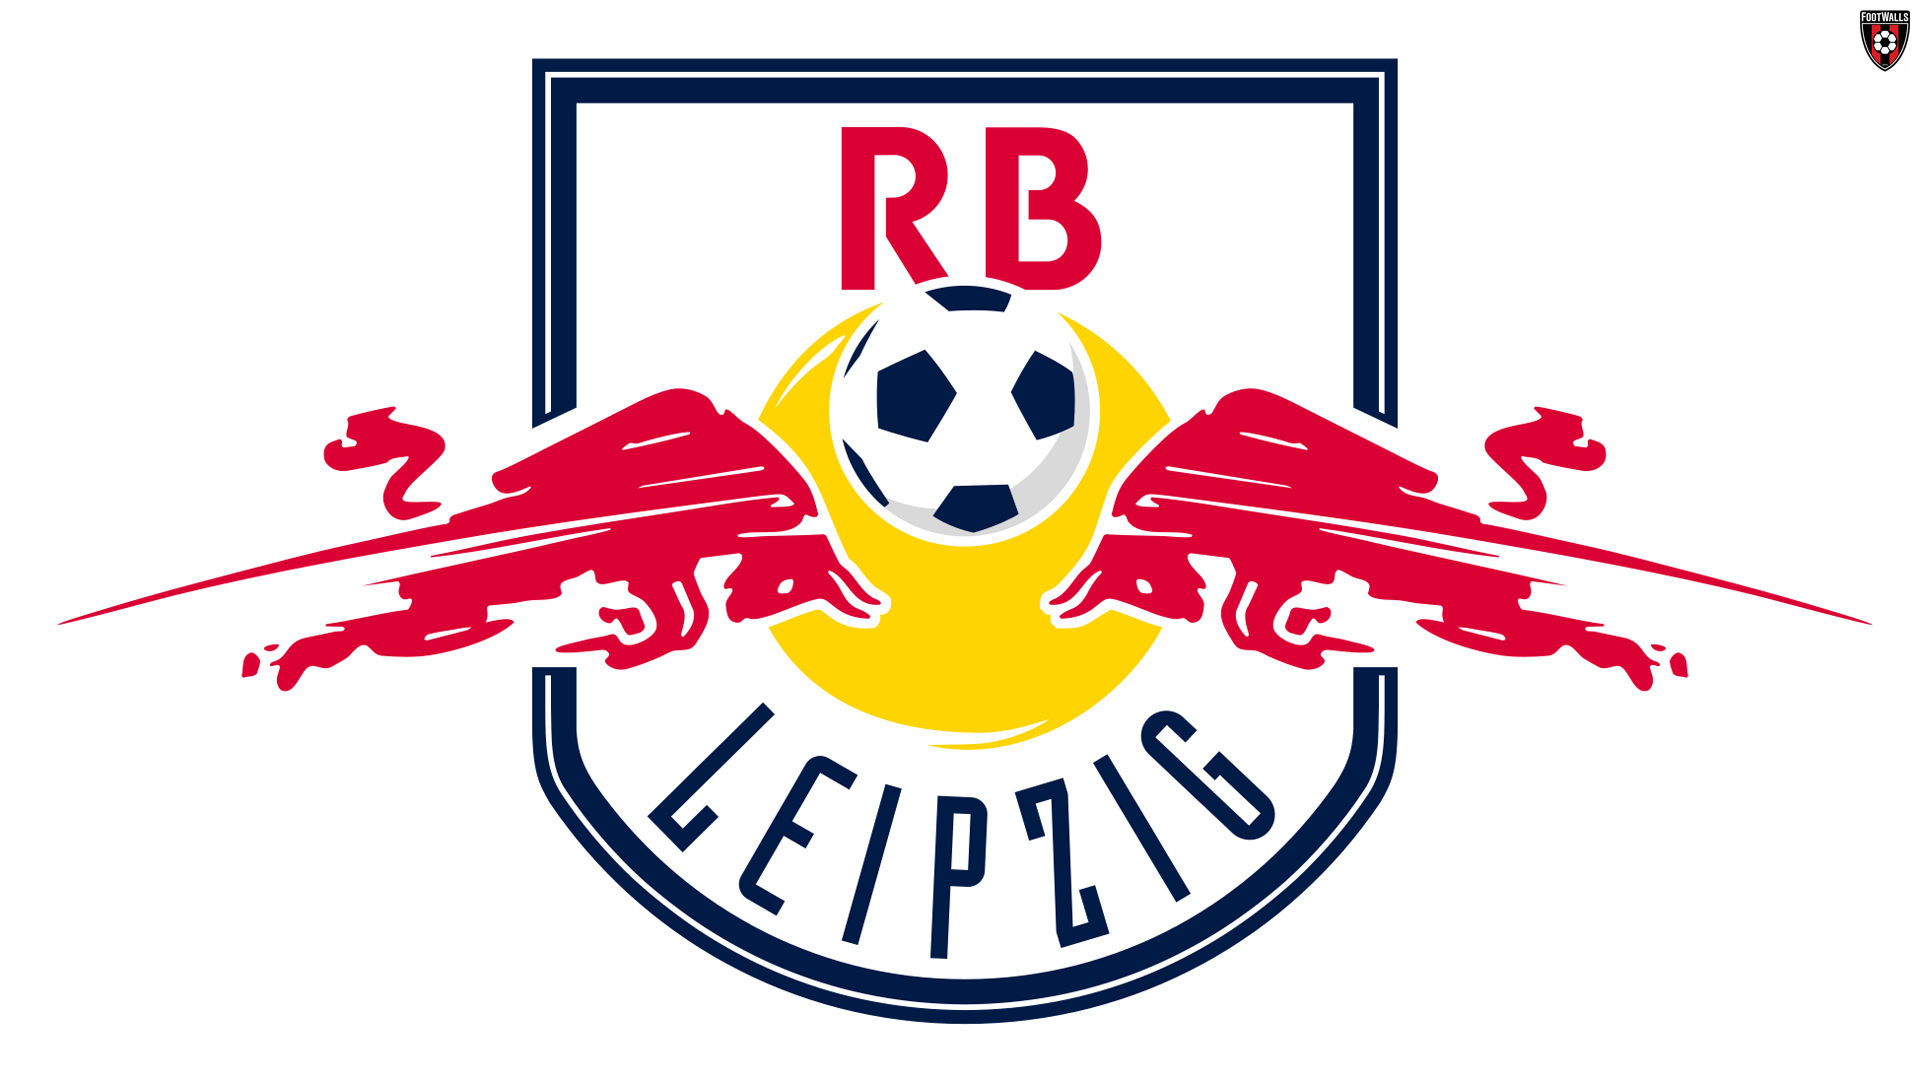 R B Leipzig Wallpaper 1 Football Wallpapers